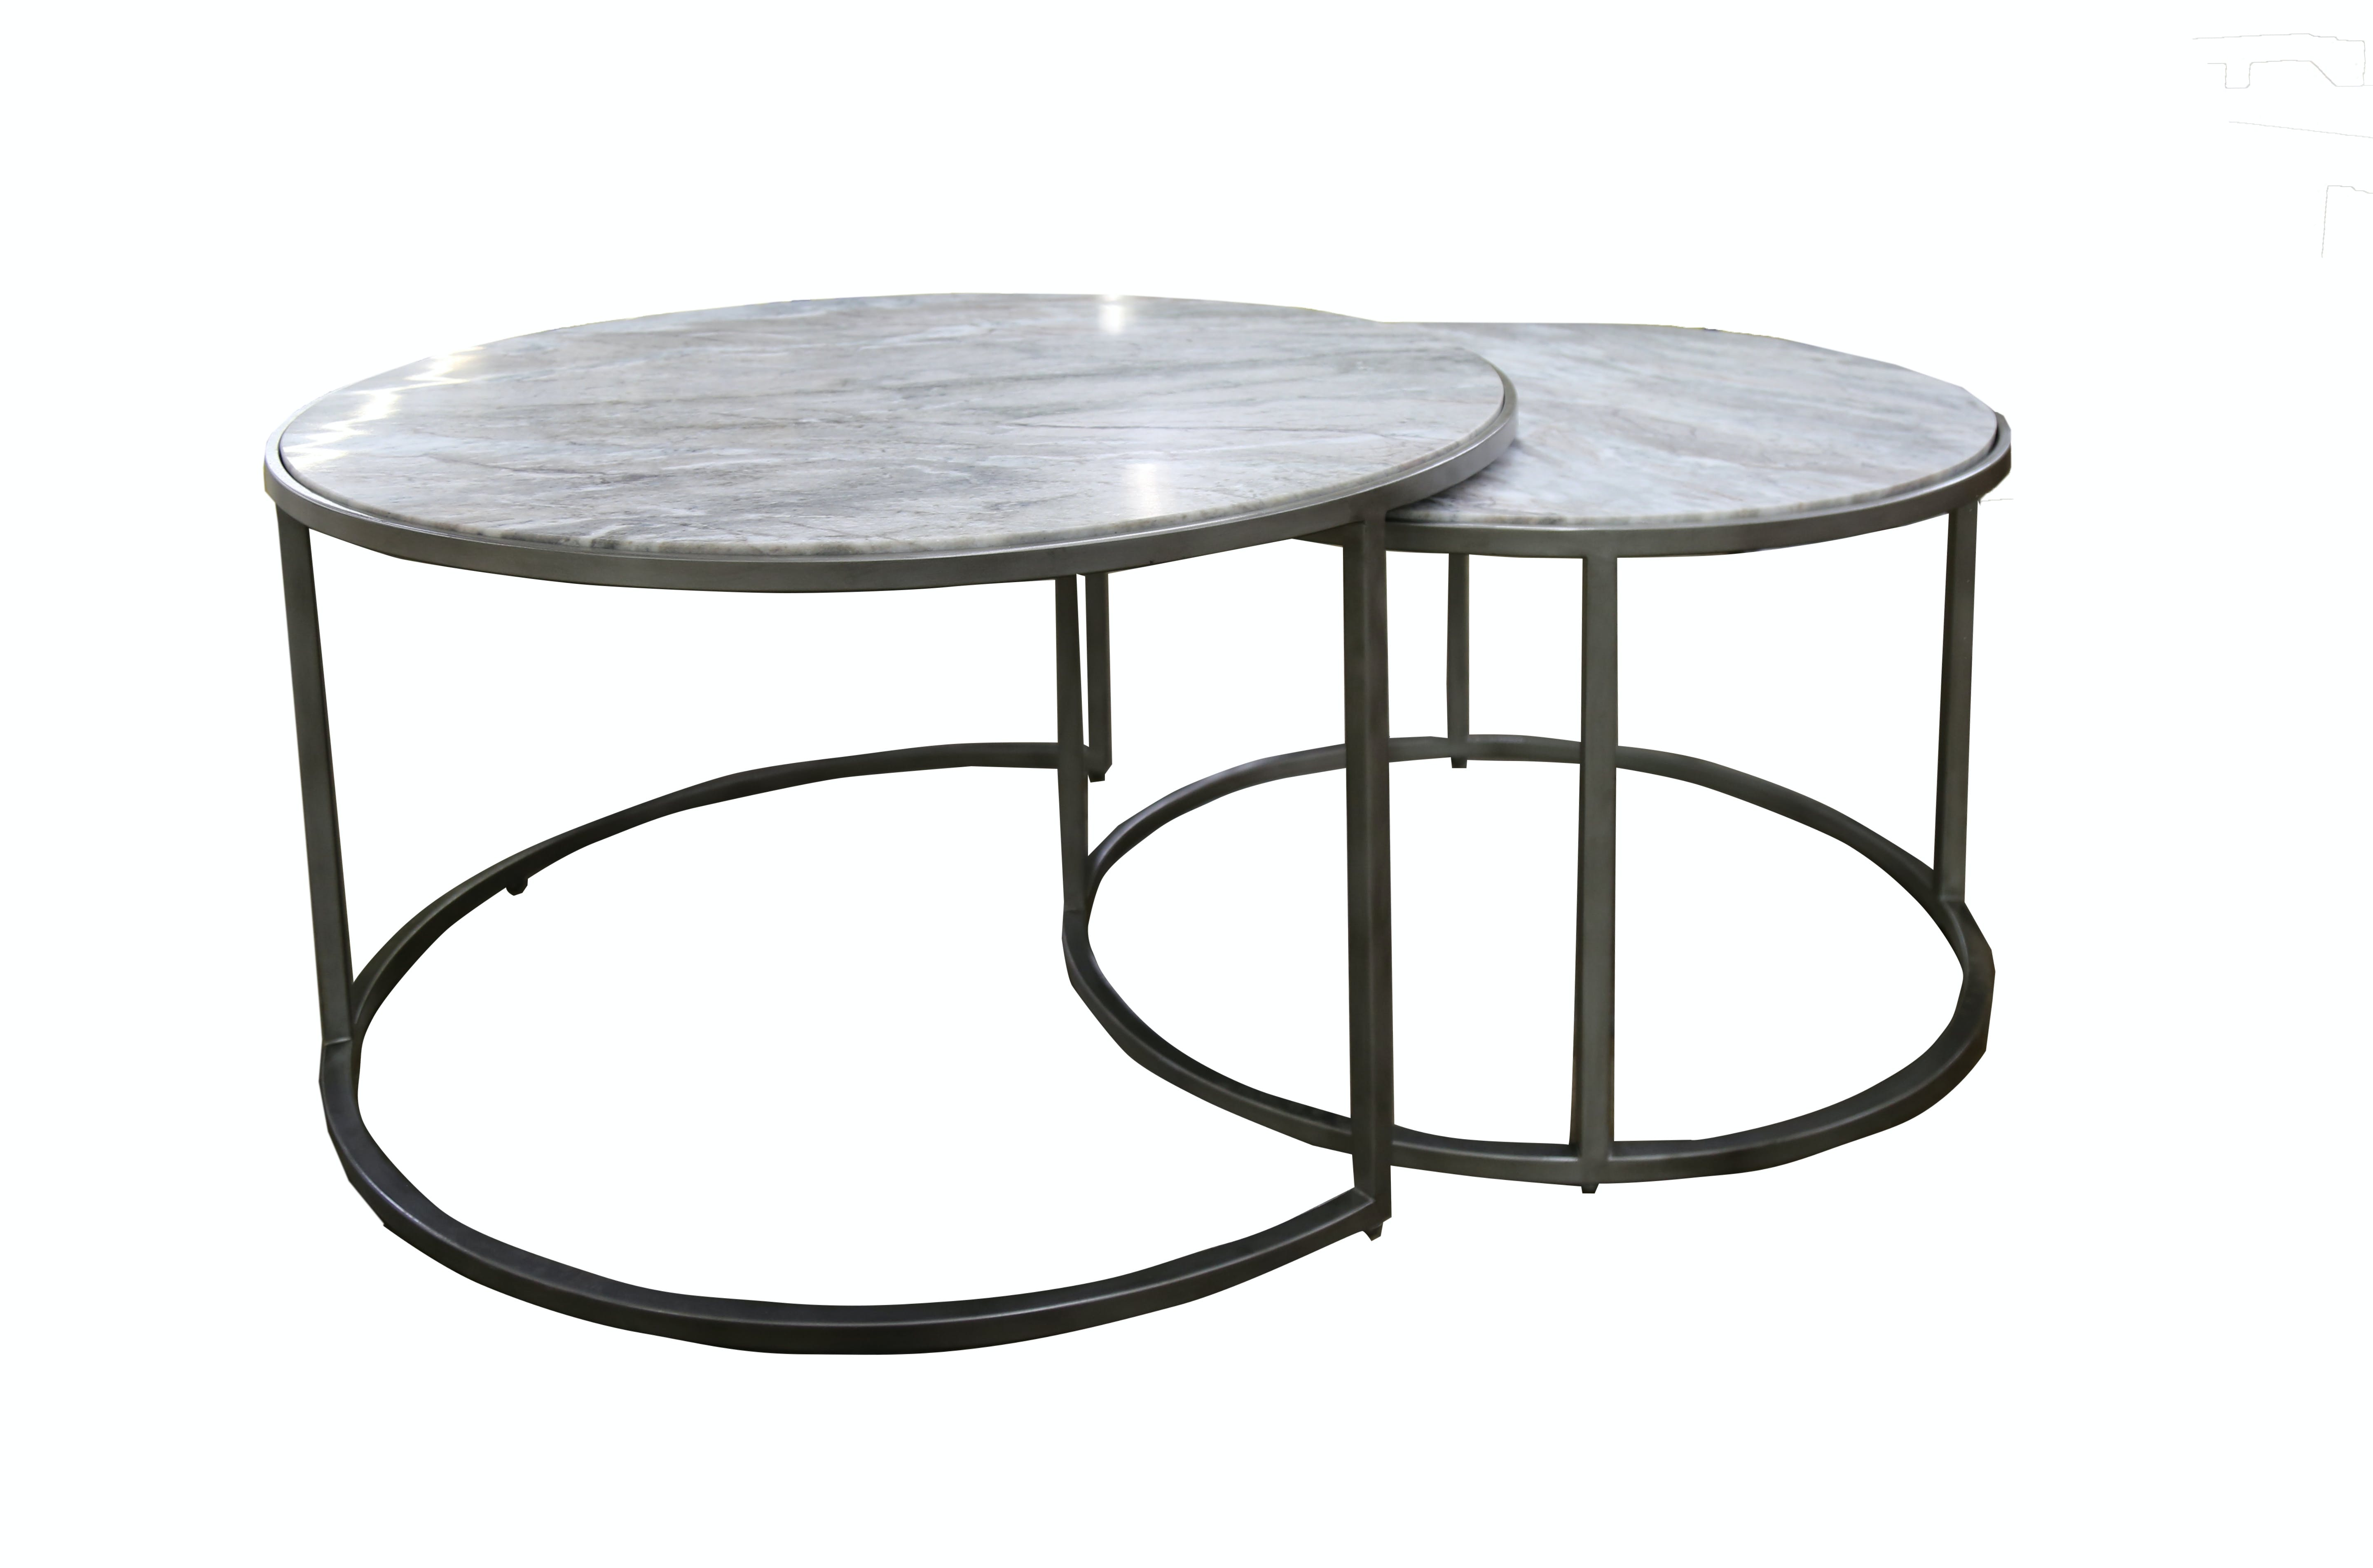 Picture of: Emmerson Round Nesting Tables